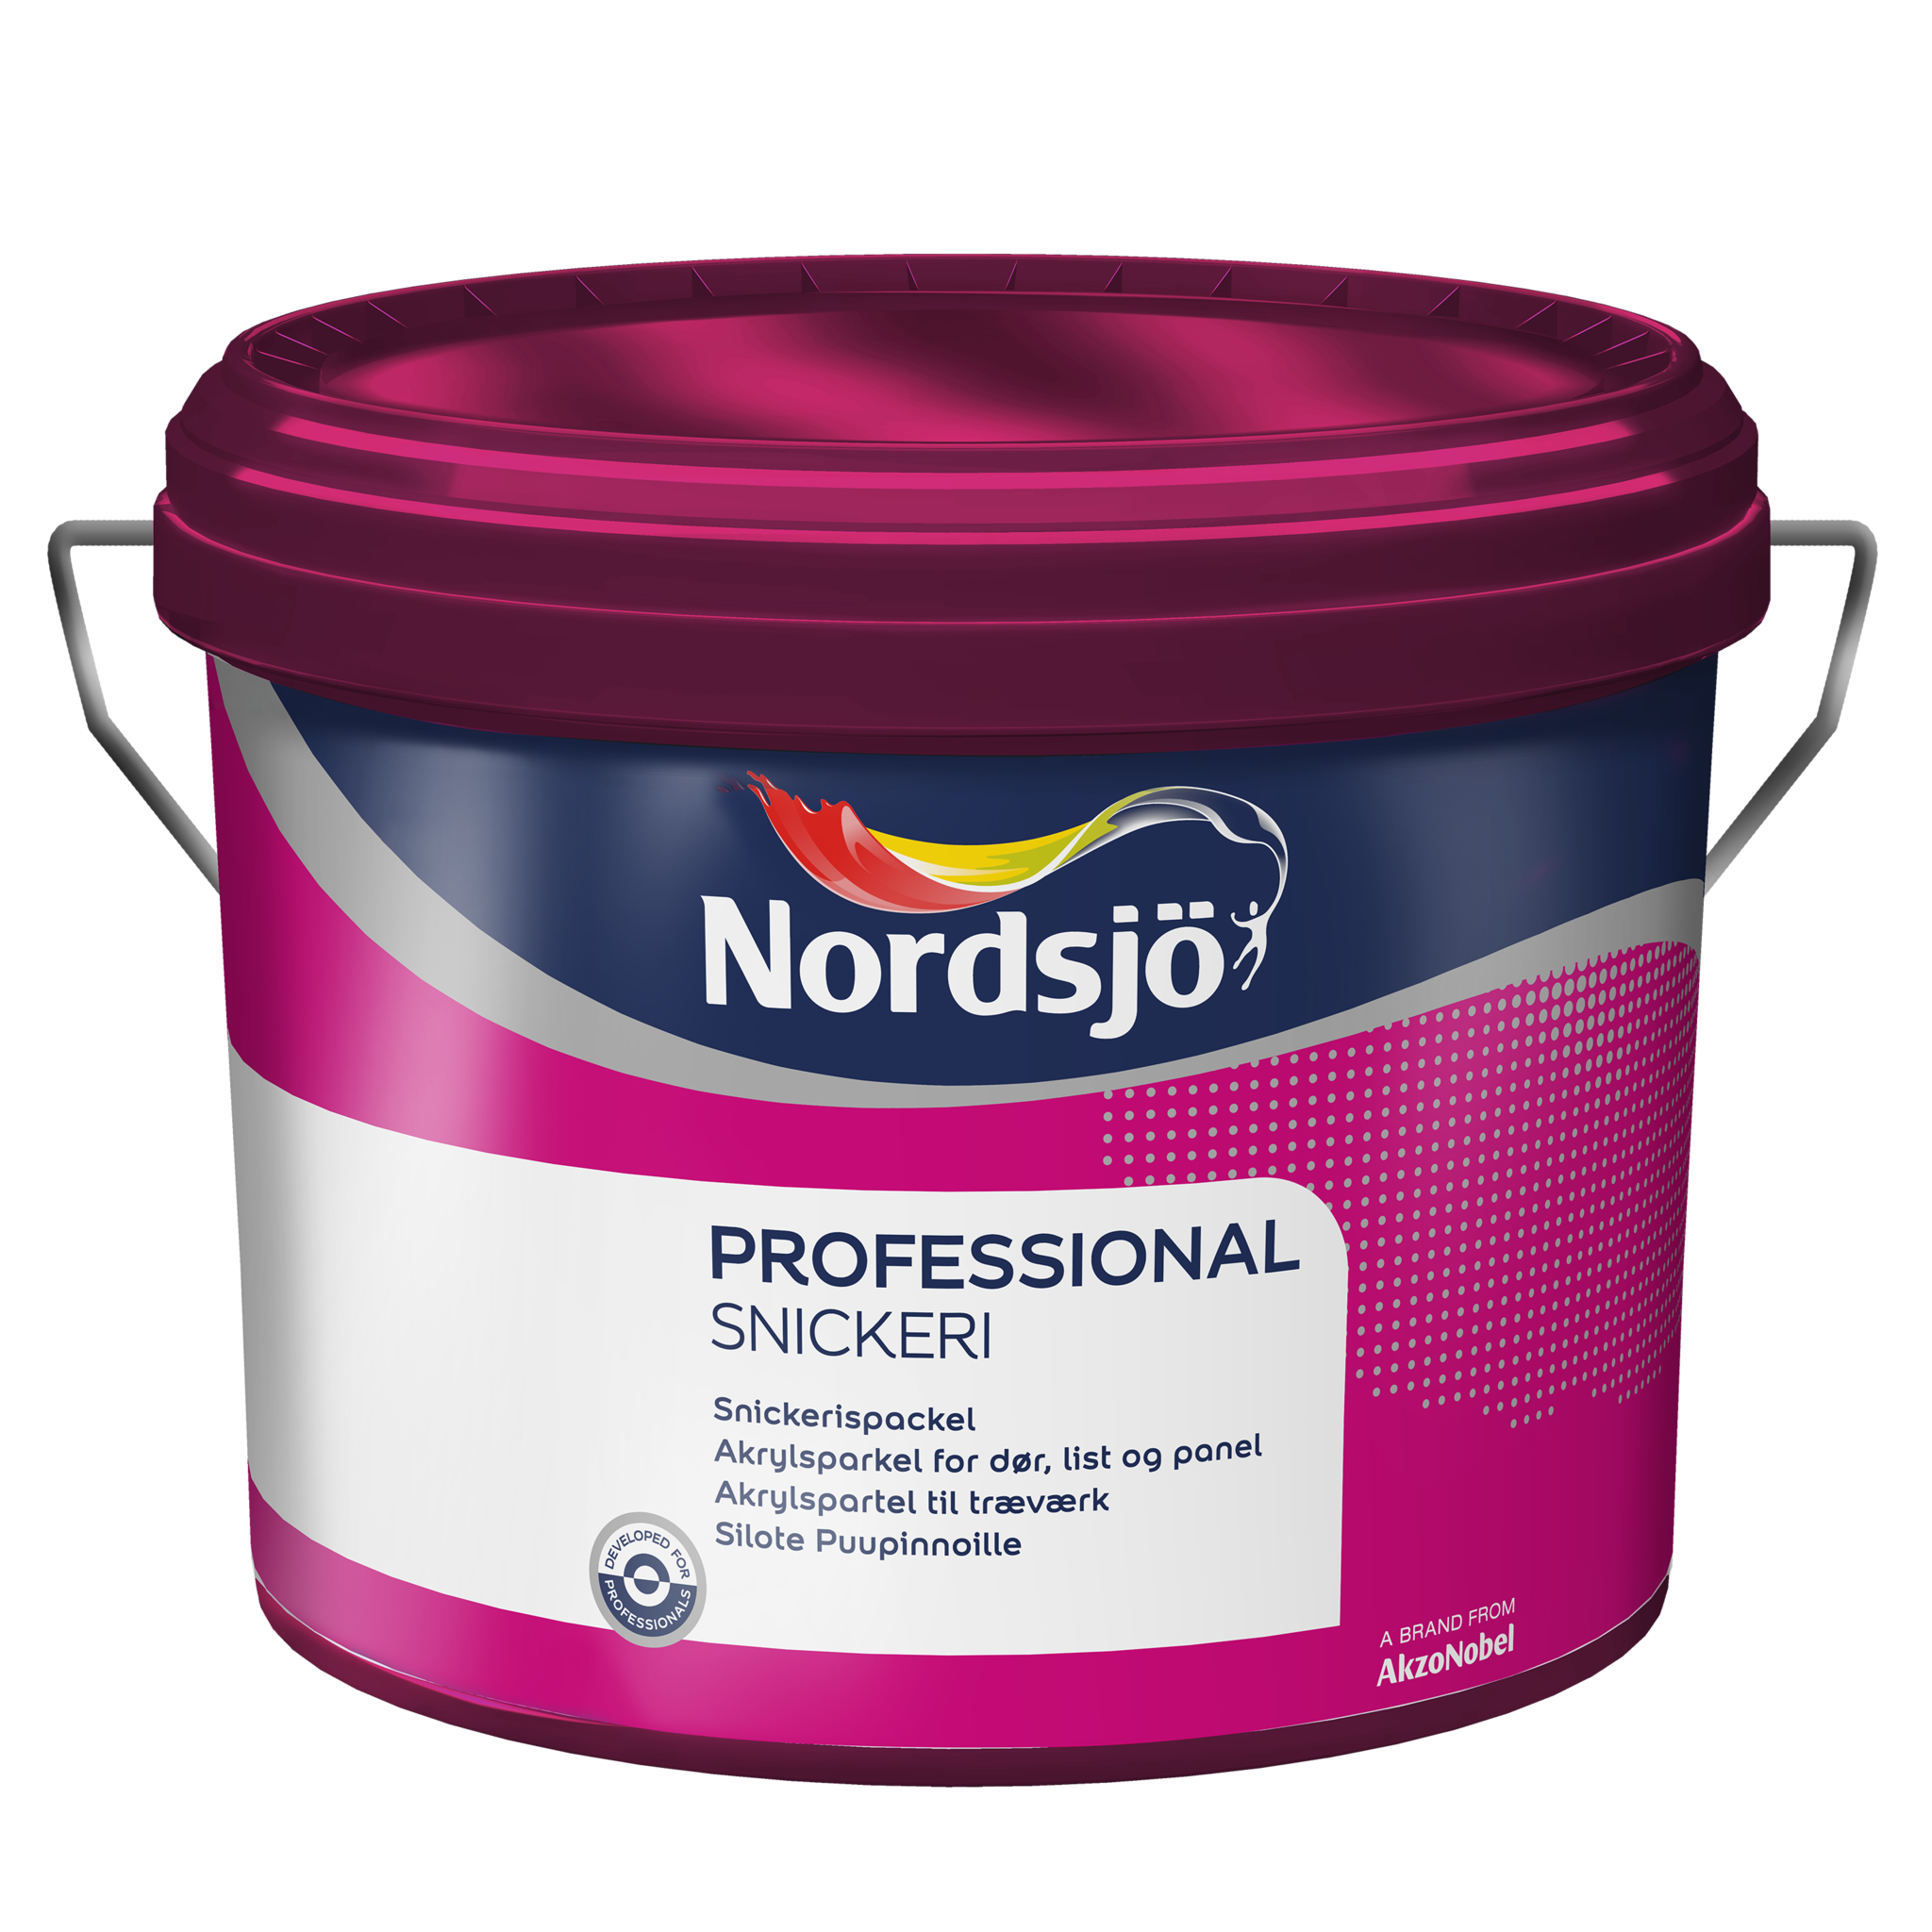 Nordsjö Professional Snickerispackel